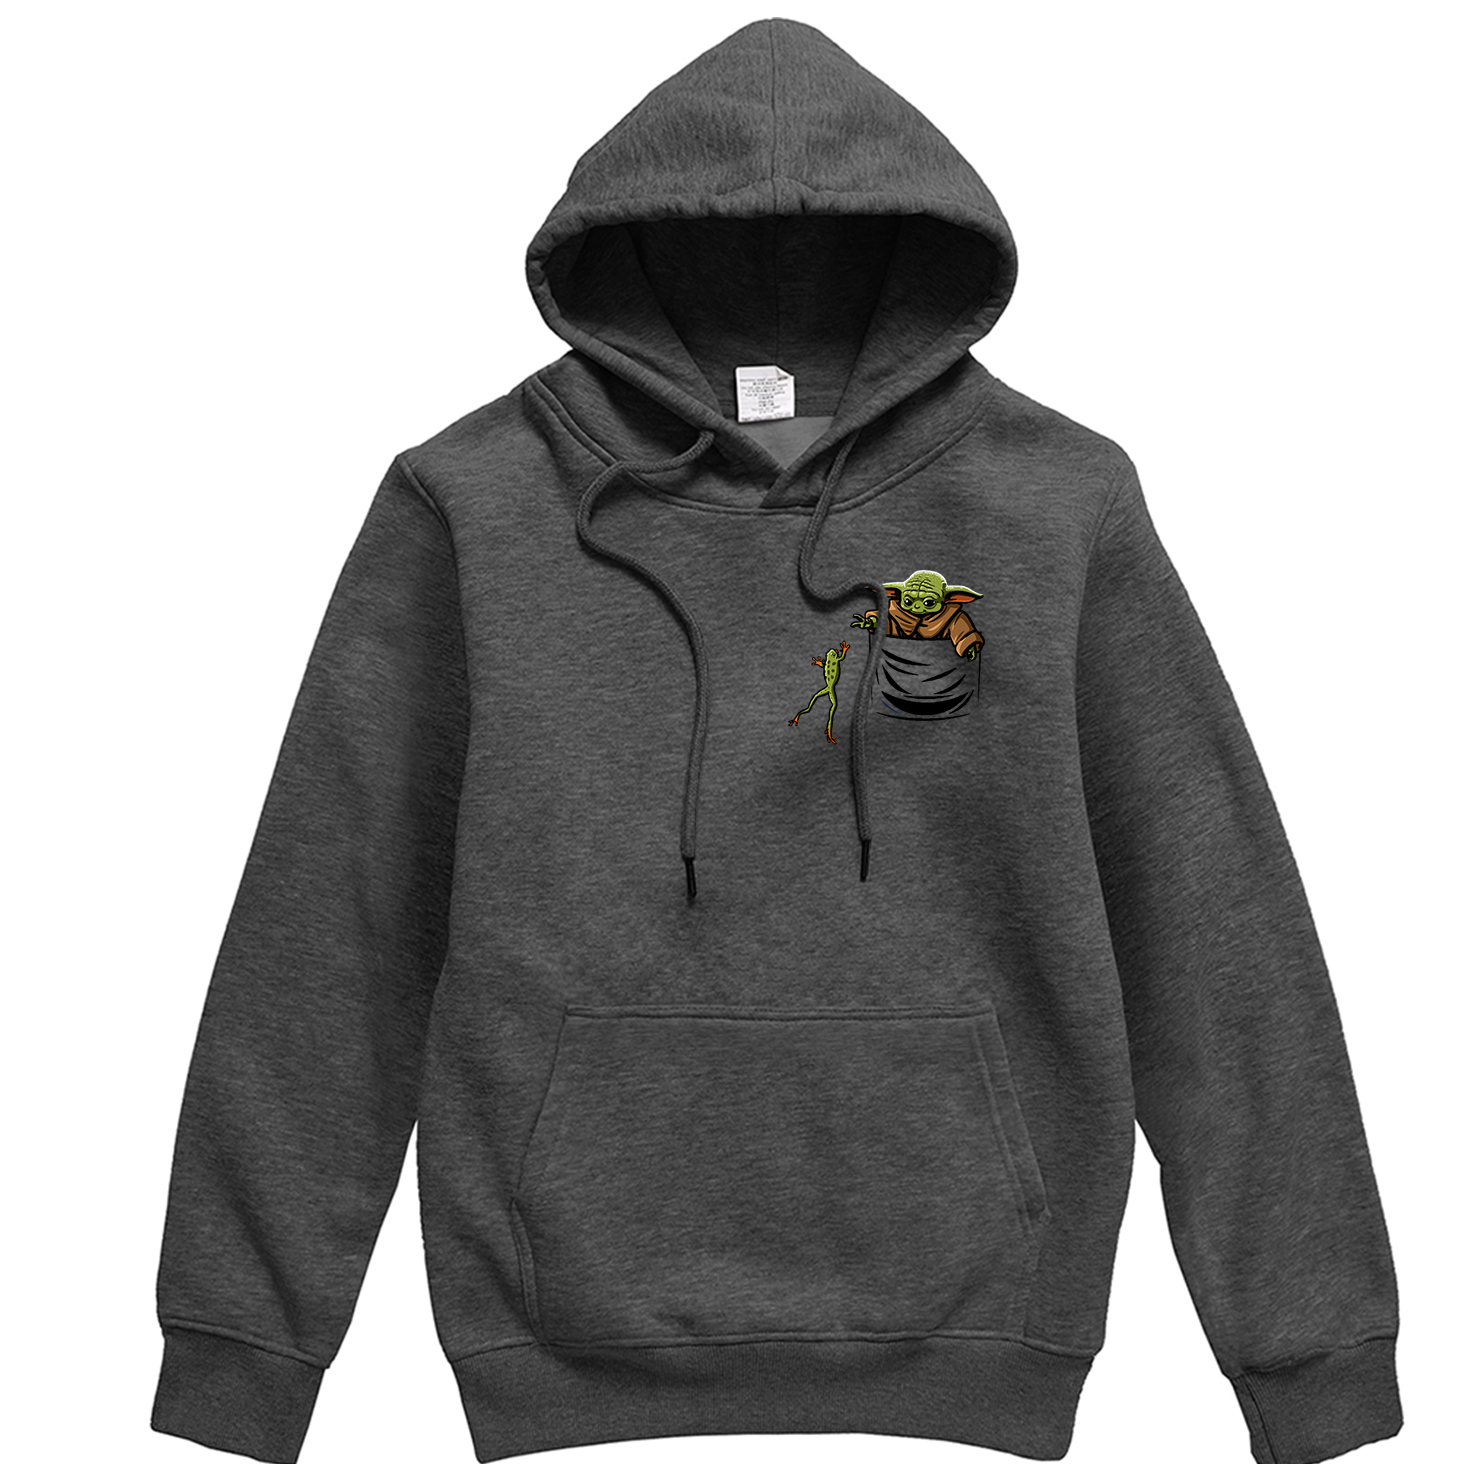 Creative Print Pullover Men Star Wars Brand Sweatshirt Cute Baby Yoda Graphics Men's Sports Hoodie Casual Funny Men Clothes Warm